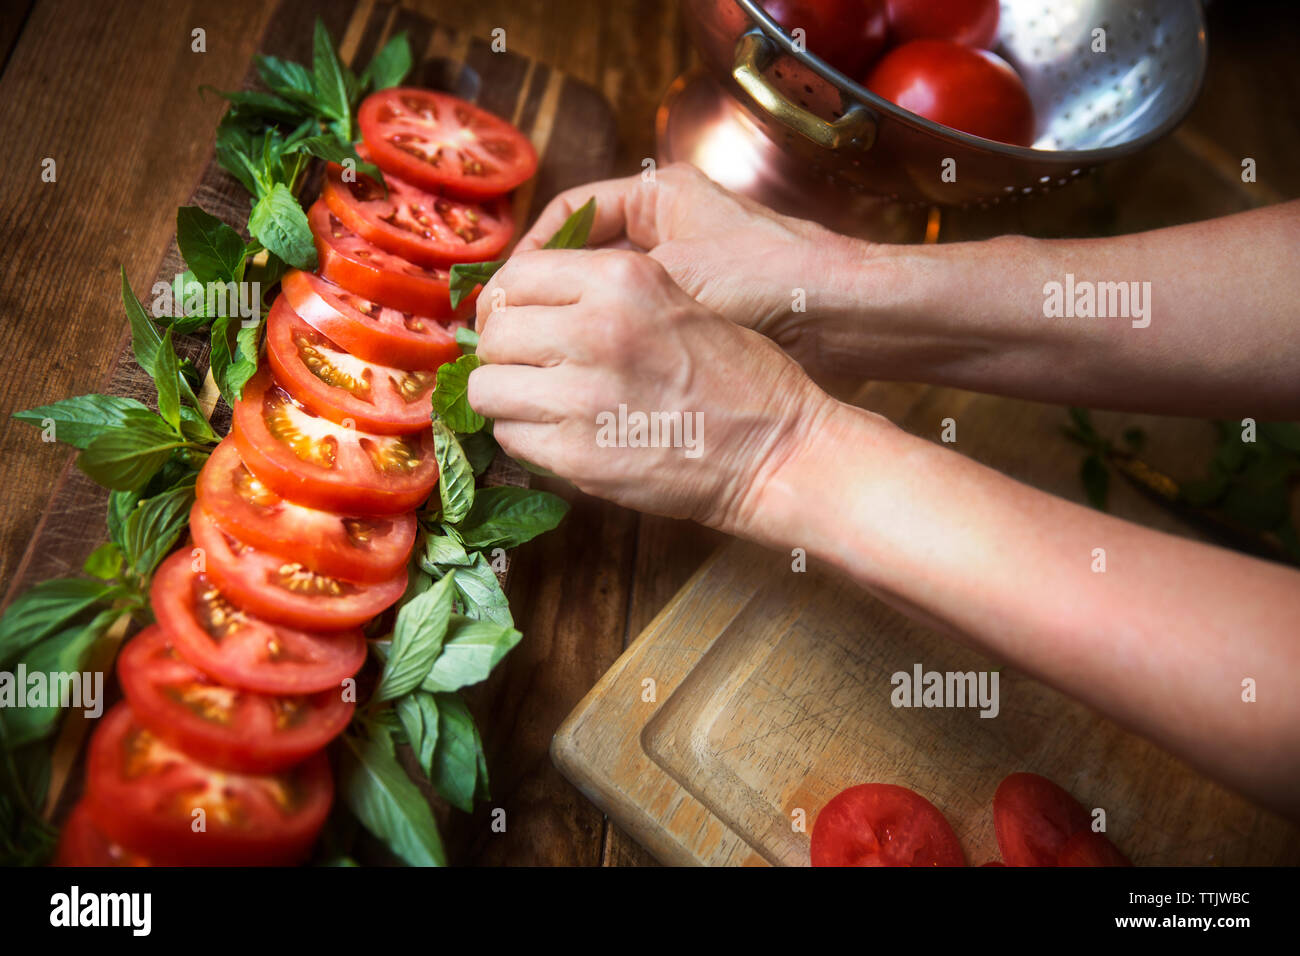 Cropped image of woman garnishing tomato salad with mint leaves at table Stock Photo